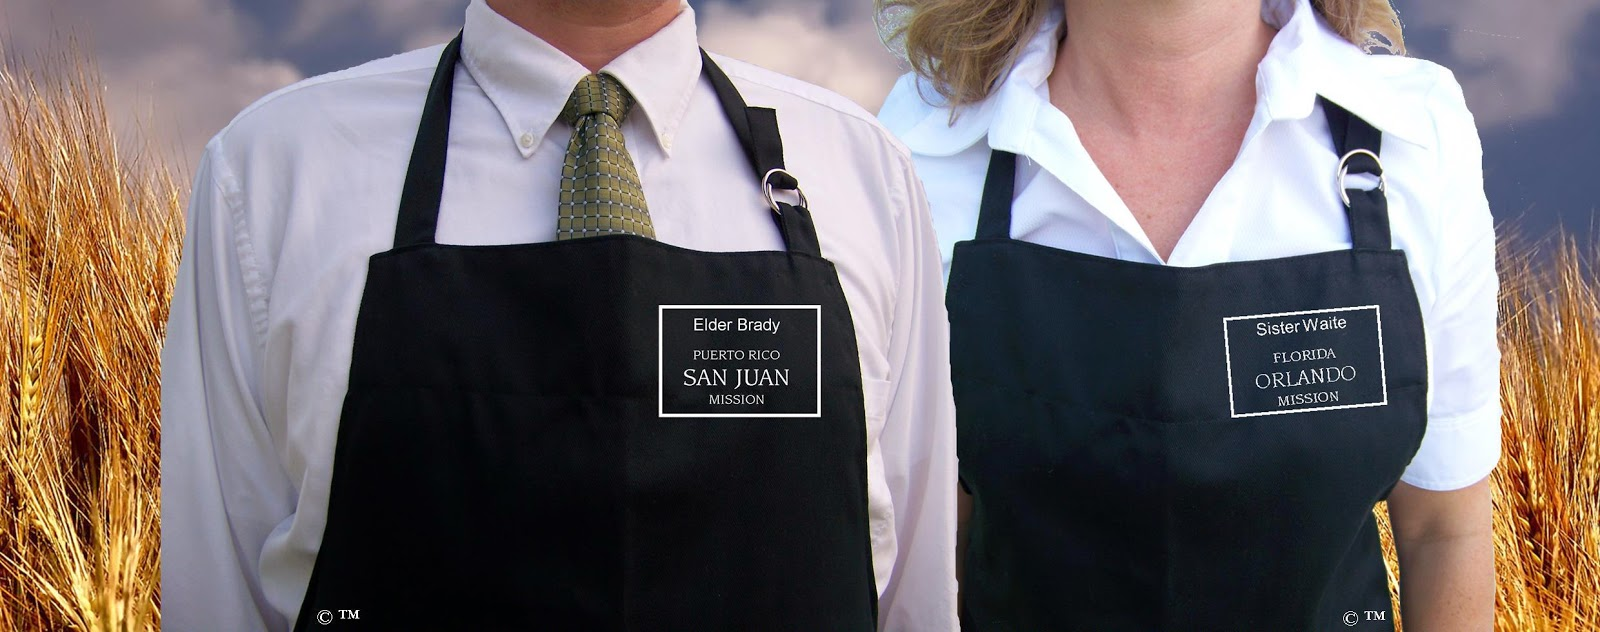 White apron brisbane